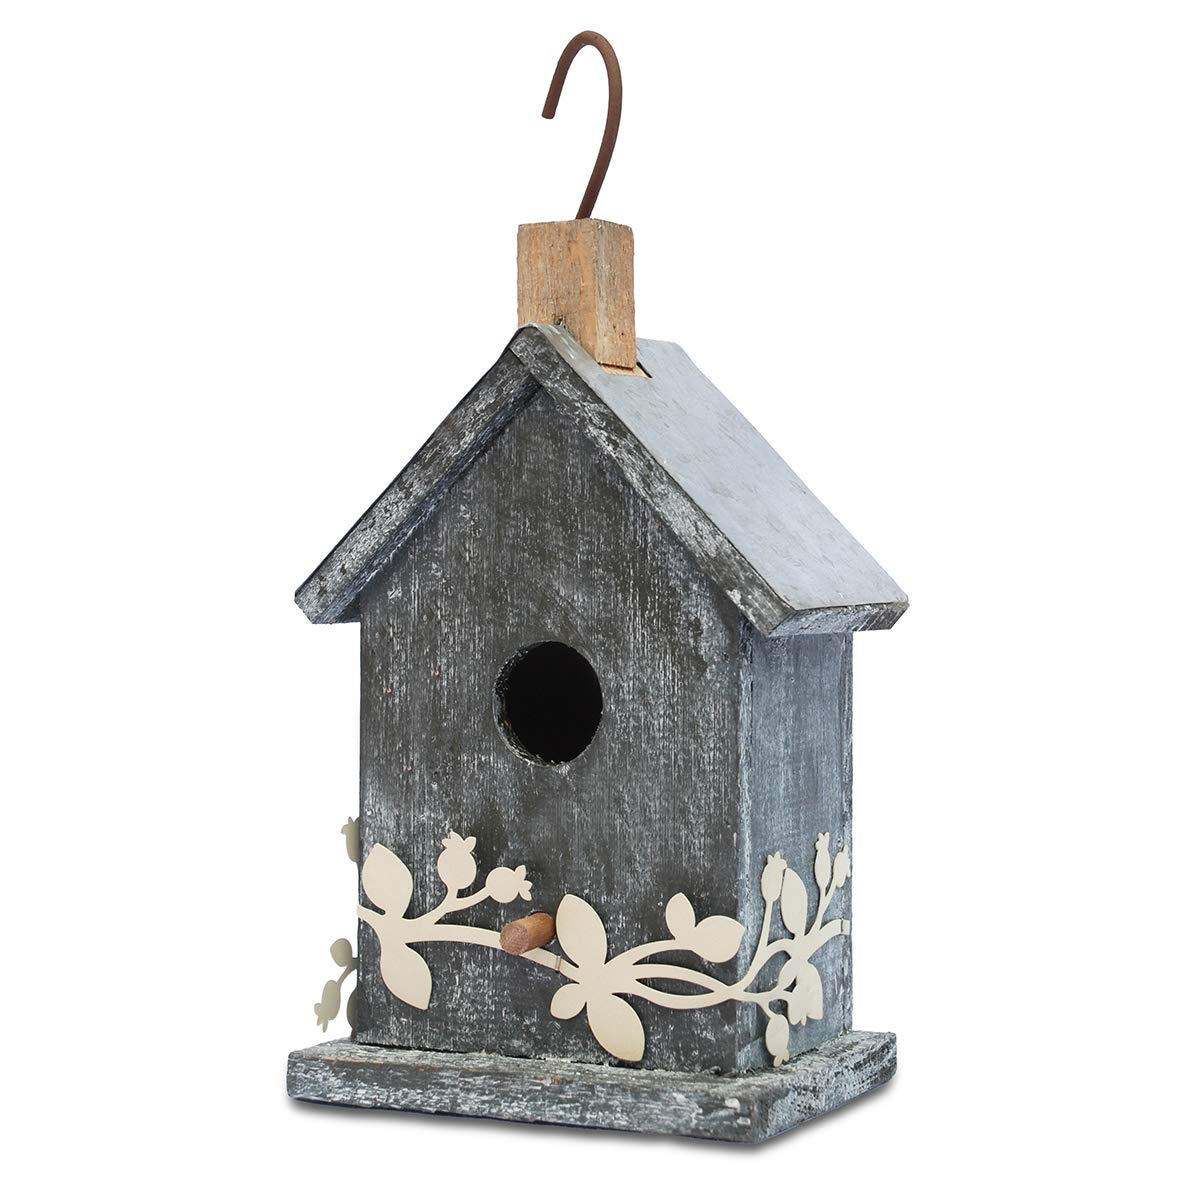 Later M Wood Bird House 9.5'' by 2019 Grayish-White Simplicity Handicrafts Birdhouse Garden Decoration